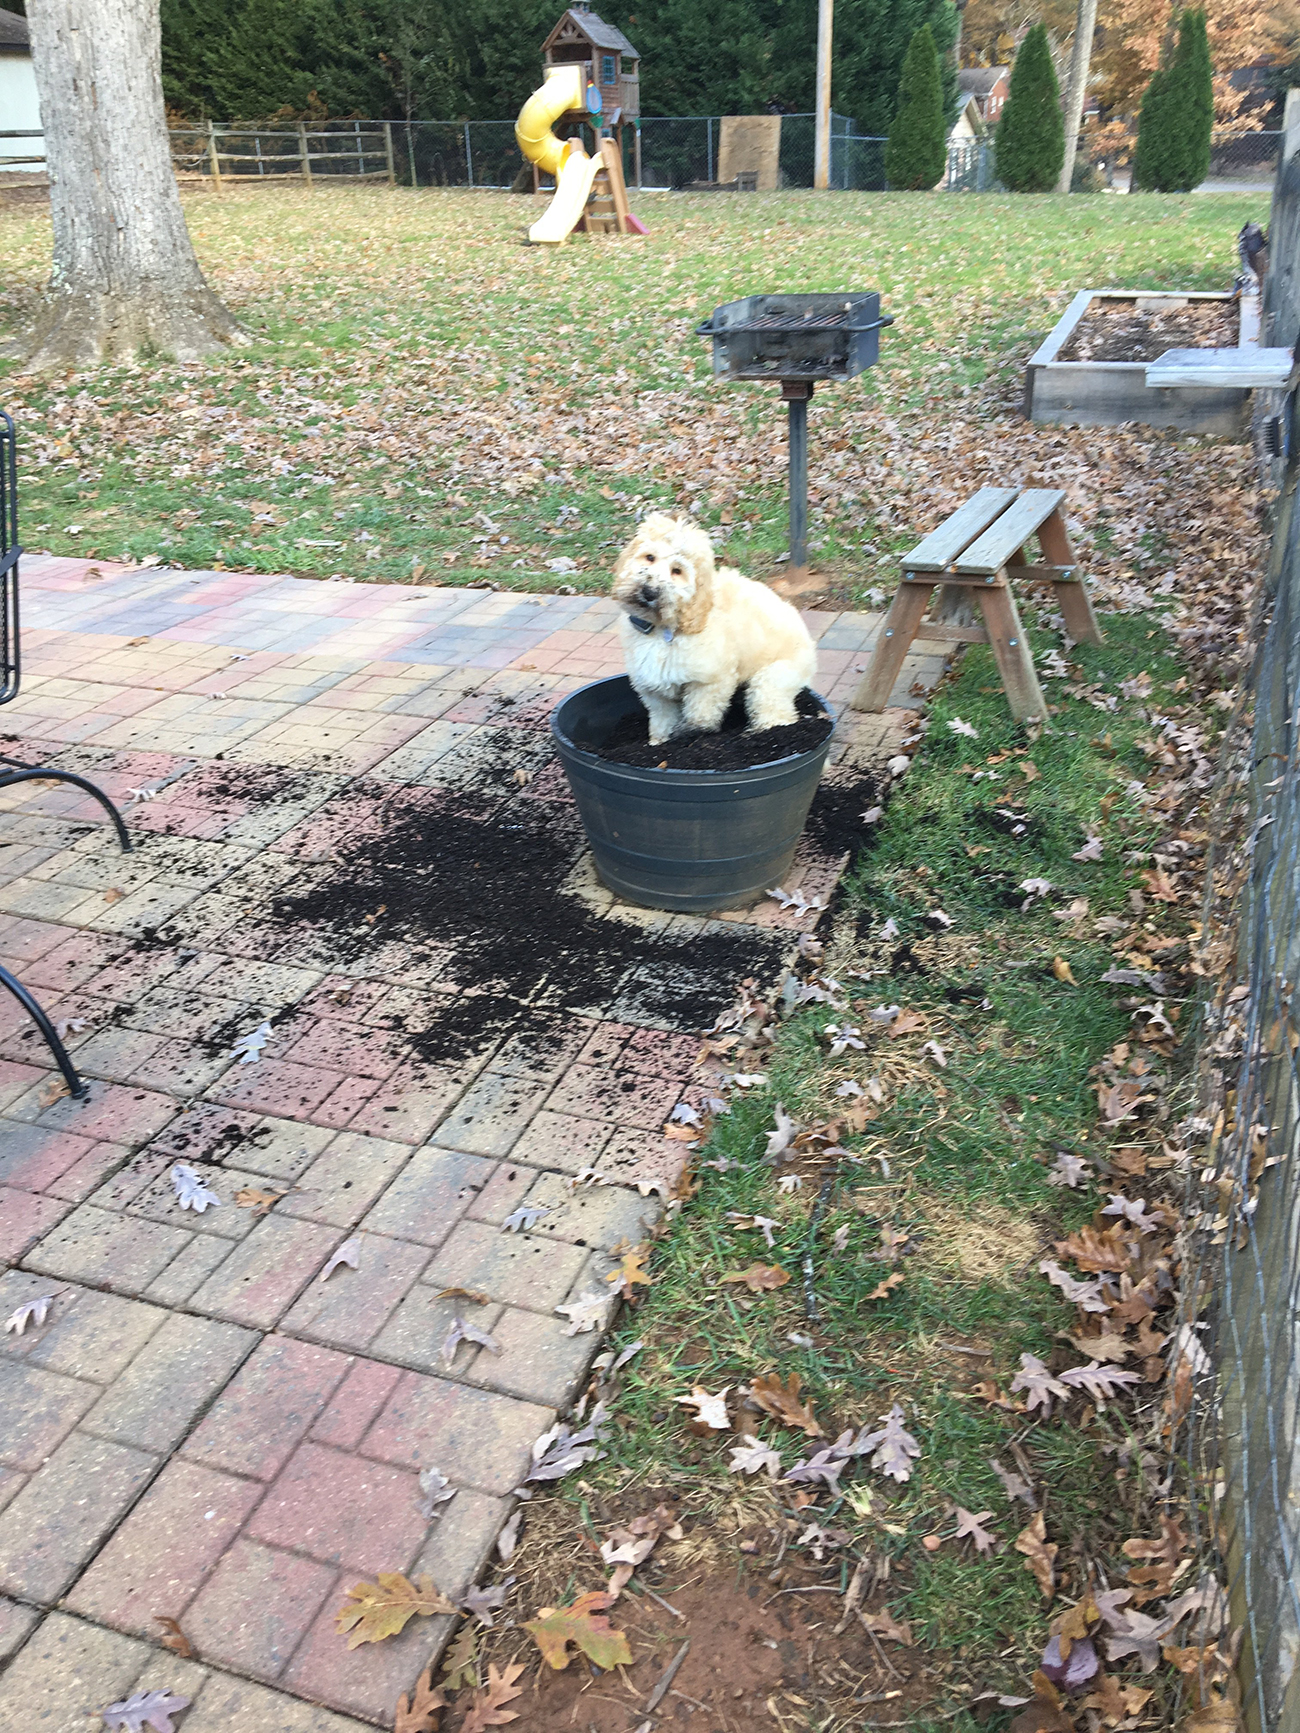 White dog sits on top of potted dirt